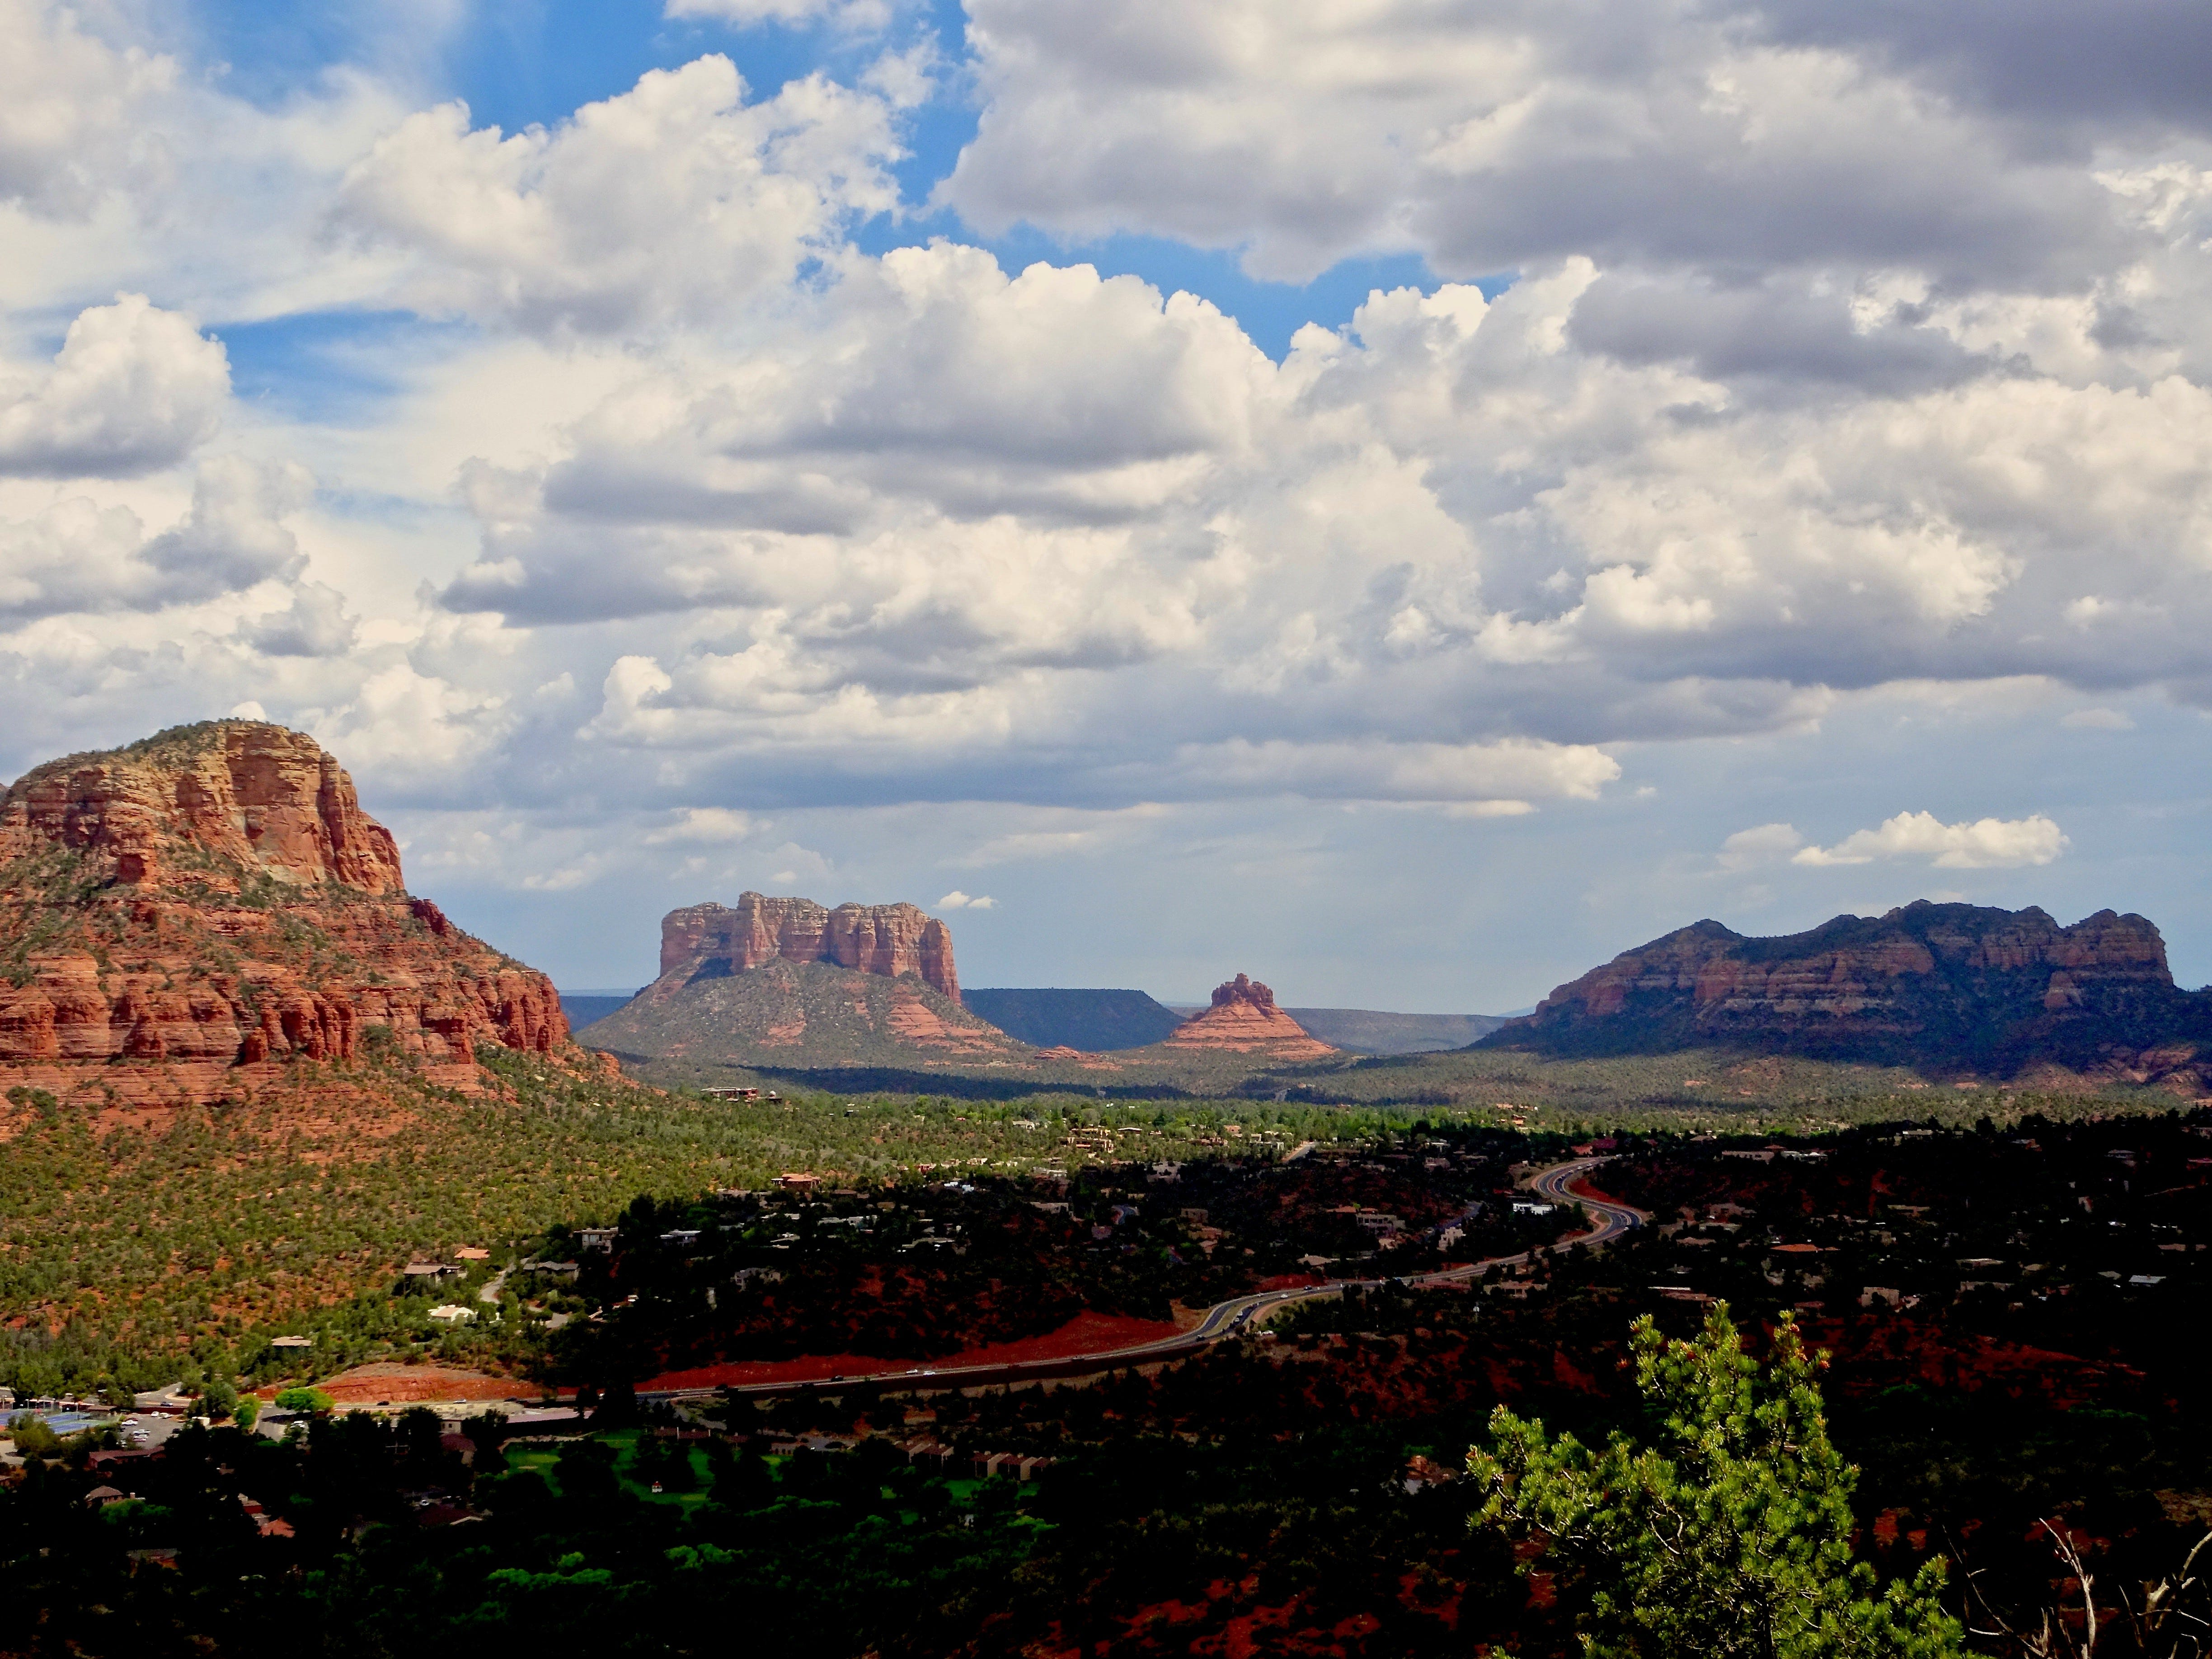 Expansive red rock views can be enjoyed from Sedona's Airport Mesa.